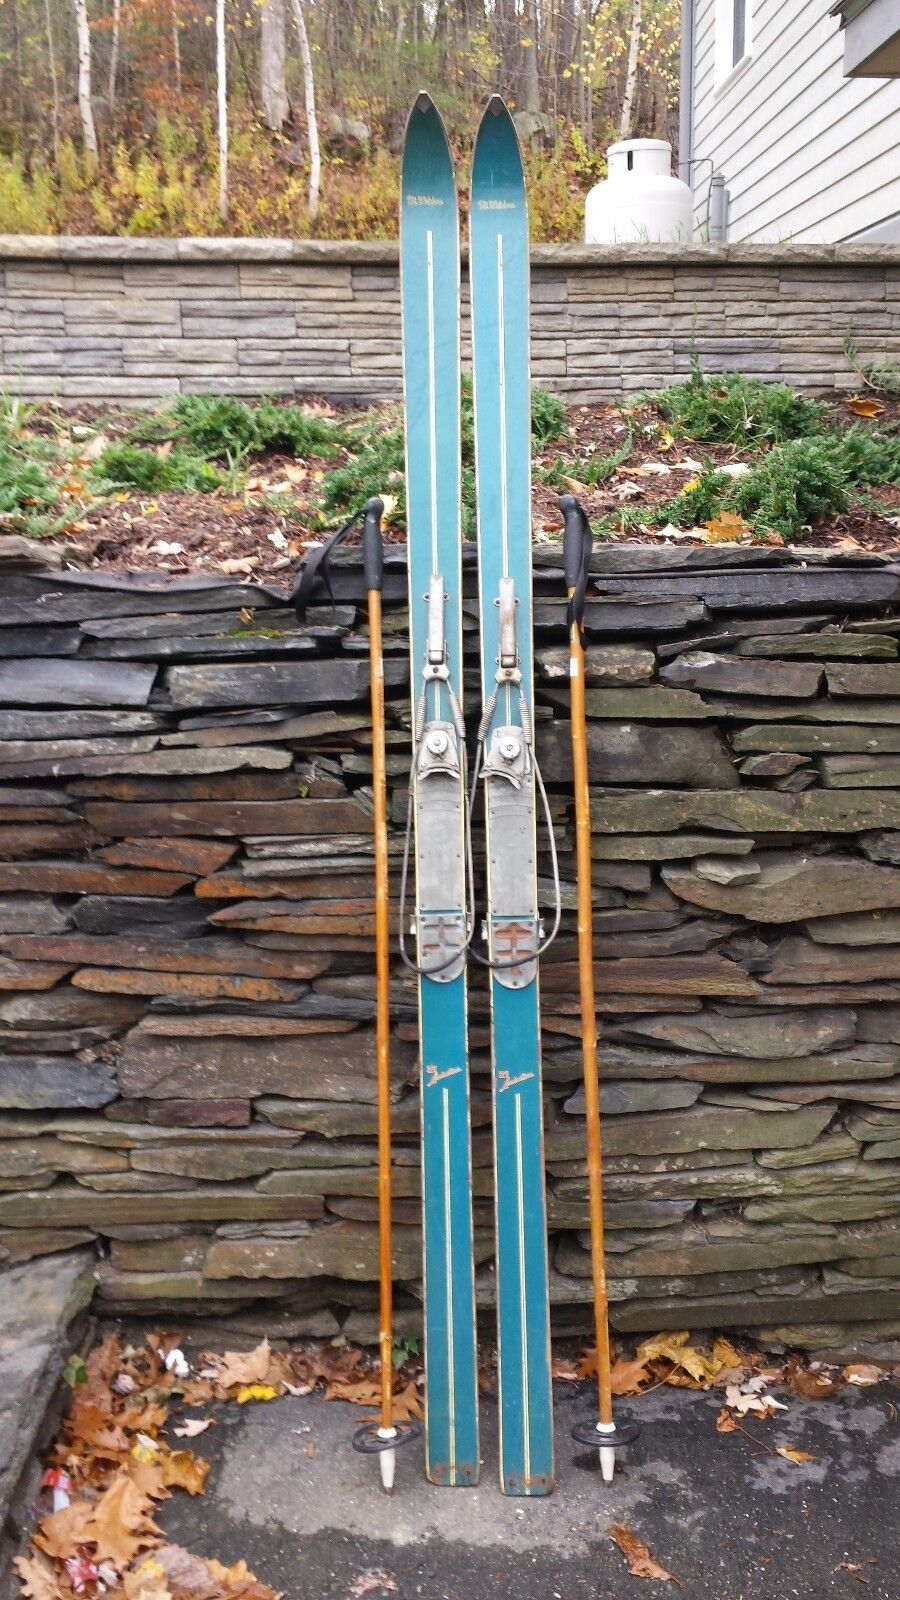 GREAT OLD Wooden Skis 76  Long Sign MT WHITEHORN + Cable Binding + Bamboo Poles